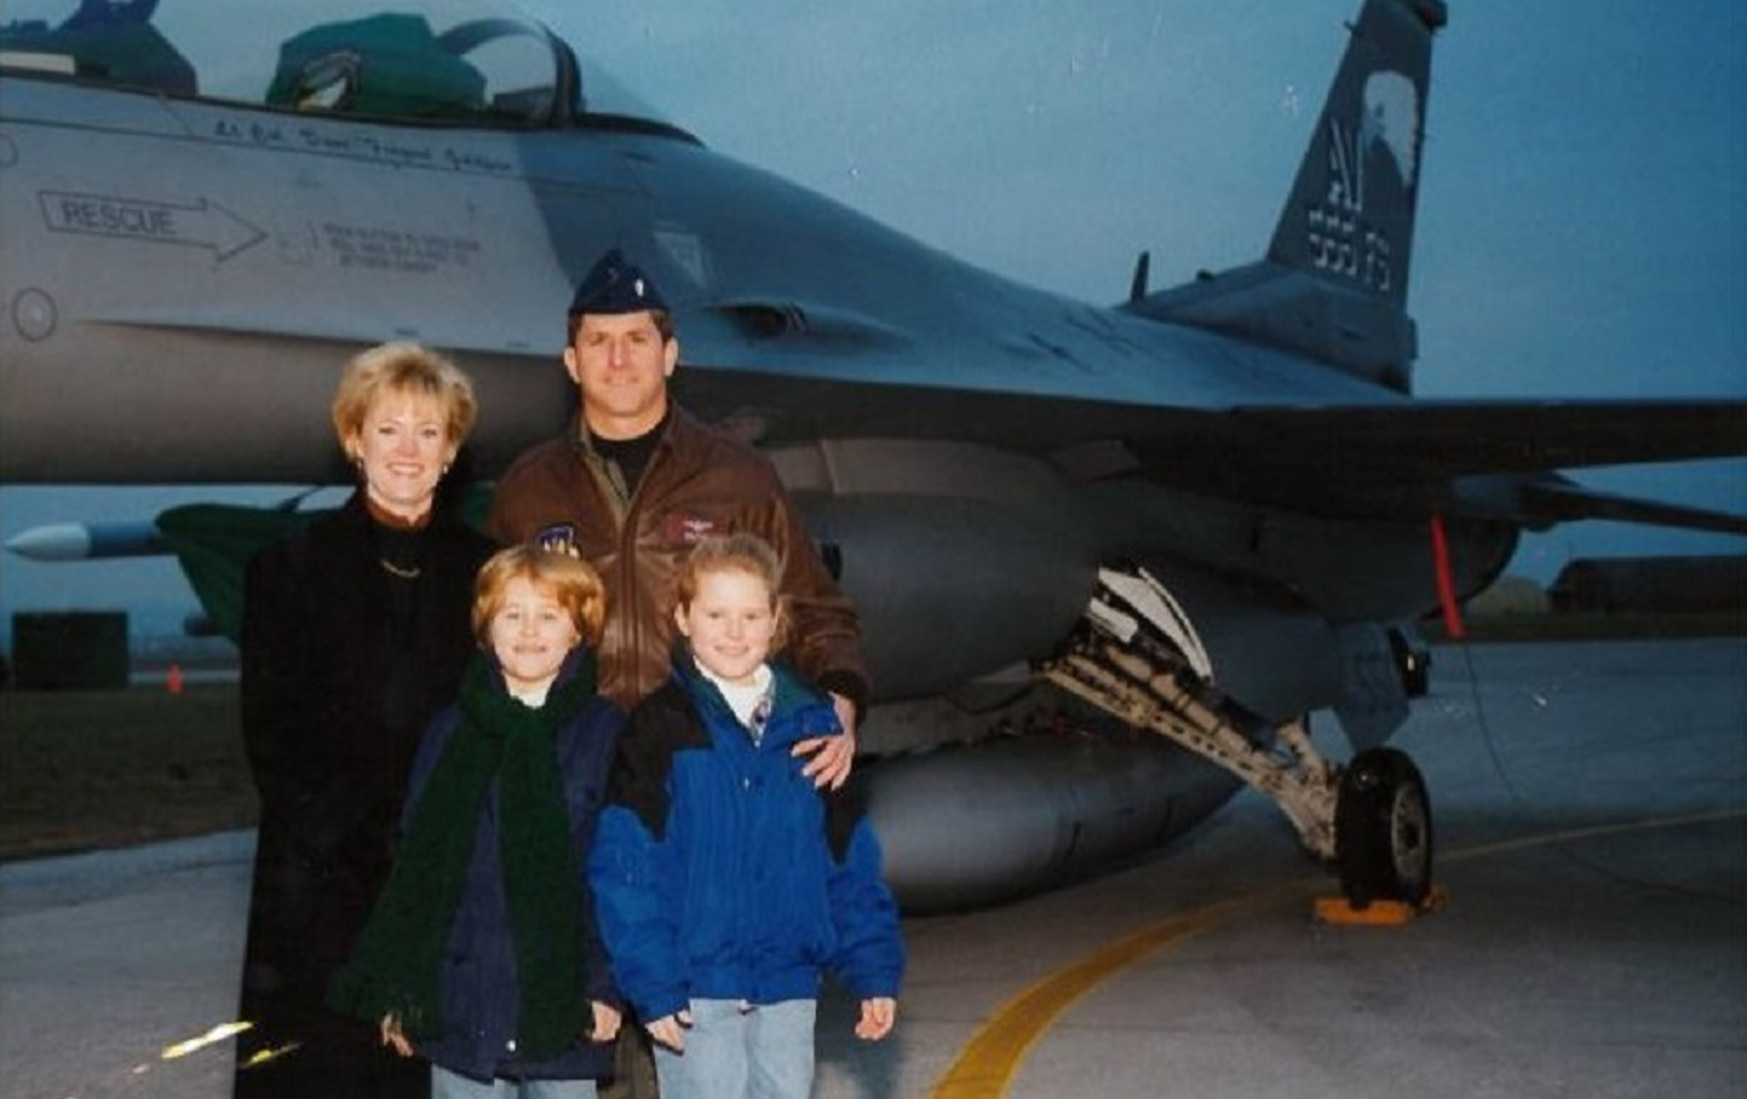 Lt. Col. Dave Goldfein is joined by, from left, his wife, Dawn, and daughters Diana, left, and Danielle, right, on the flight line at Aviano Air Base, Italy, in 1998. (Courtesy photo)